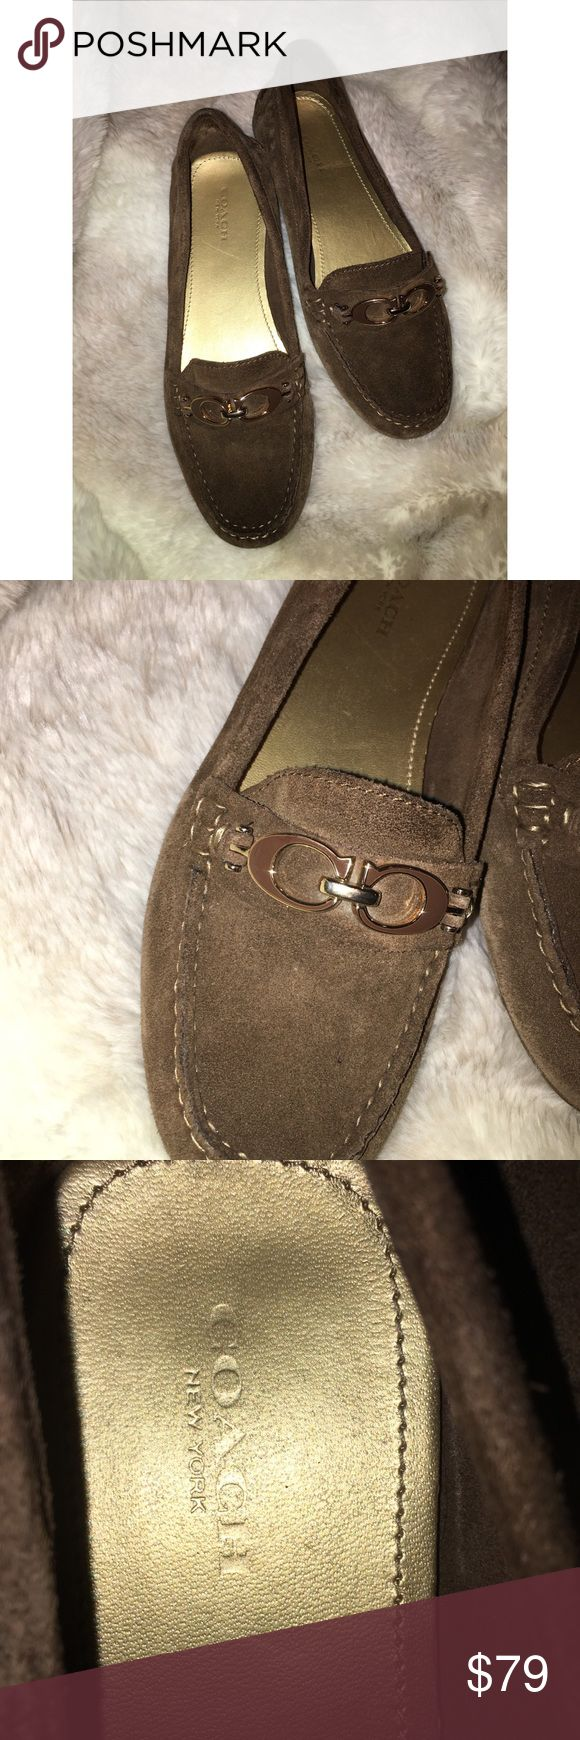 COACH Brown Suede Loafers COACH Brown Suede Loafers STILL LIKE NEW!! No Stains!  Gently Worn Around The House Luxurious Suede Hugs Your Feet Silky Soft Comfort!! SIZE 6.5 Coach Shoes Flats & Loafers